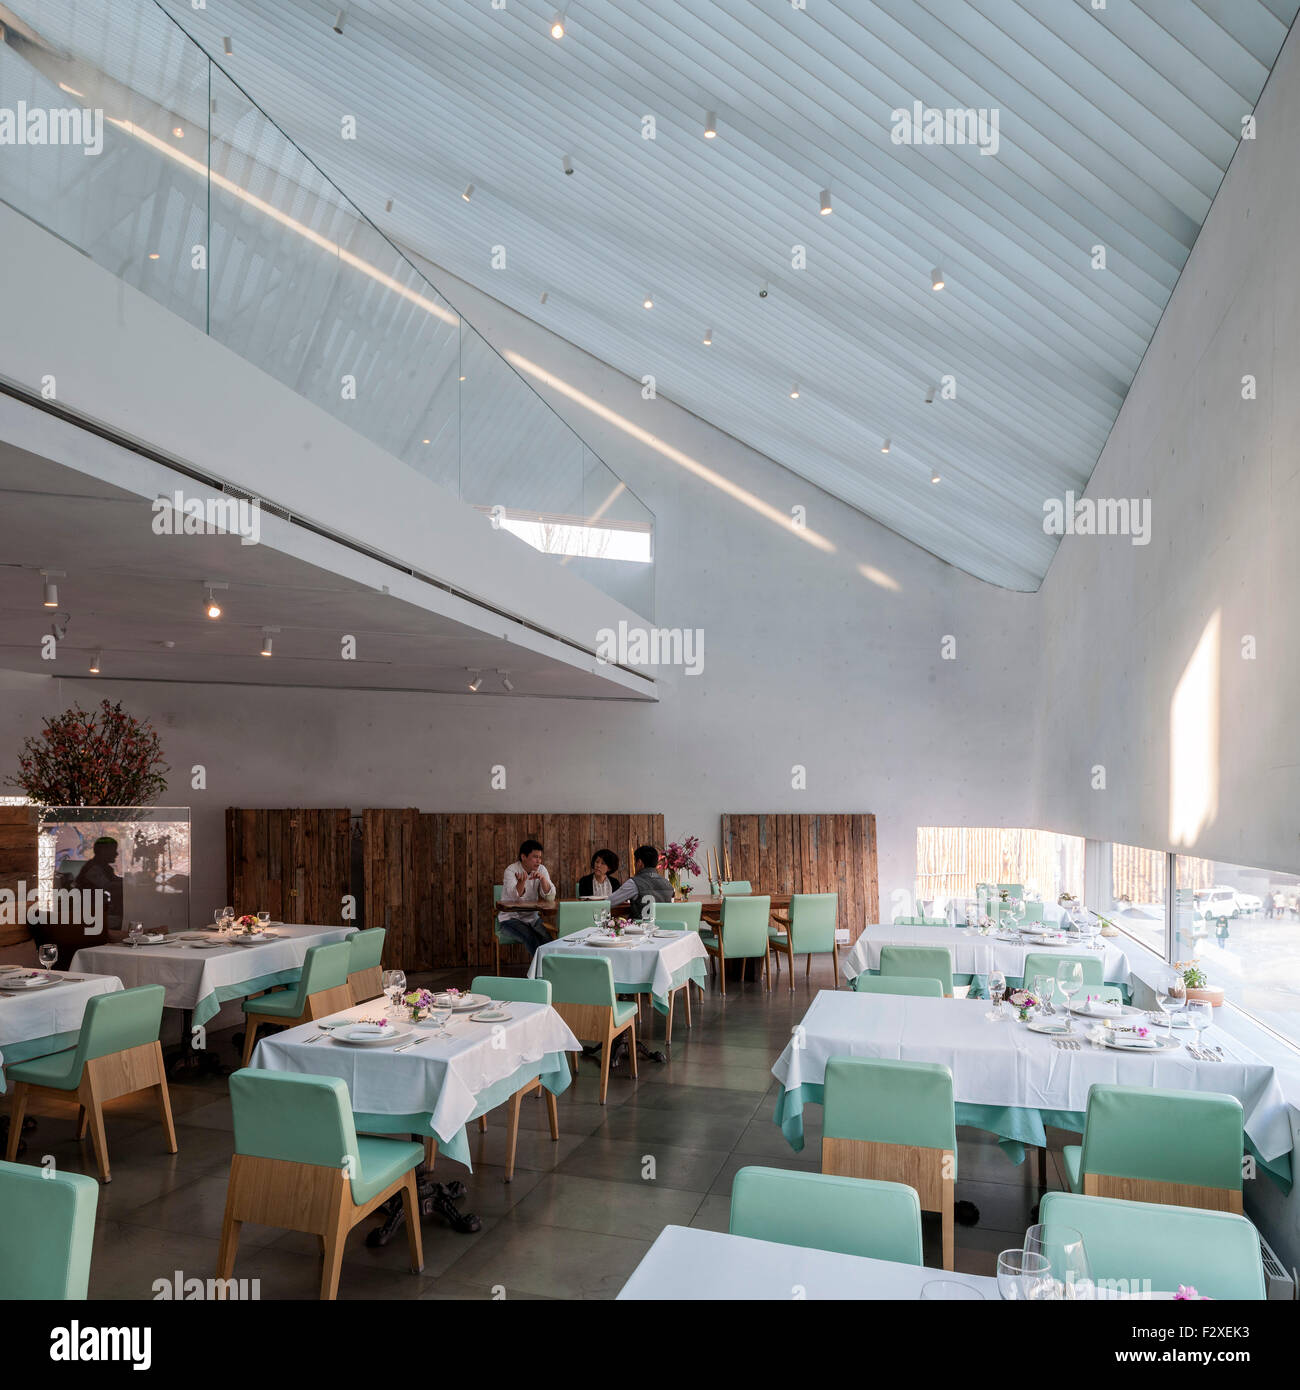 restaurant interior with louvred skylight and gallery. songwon art